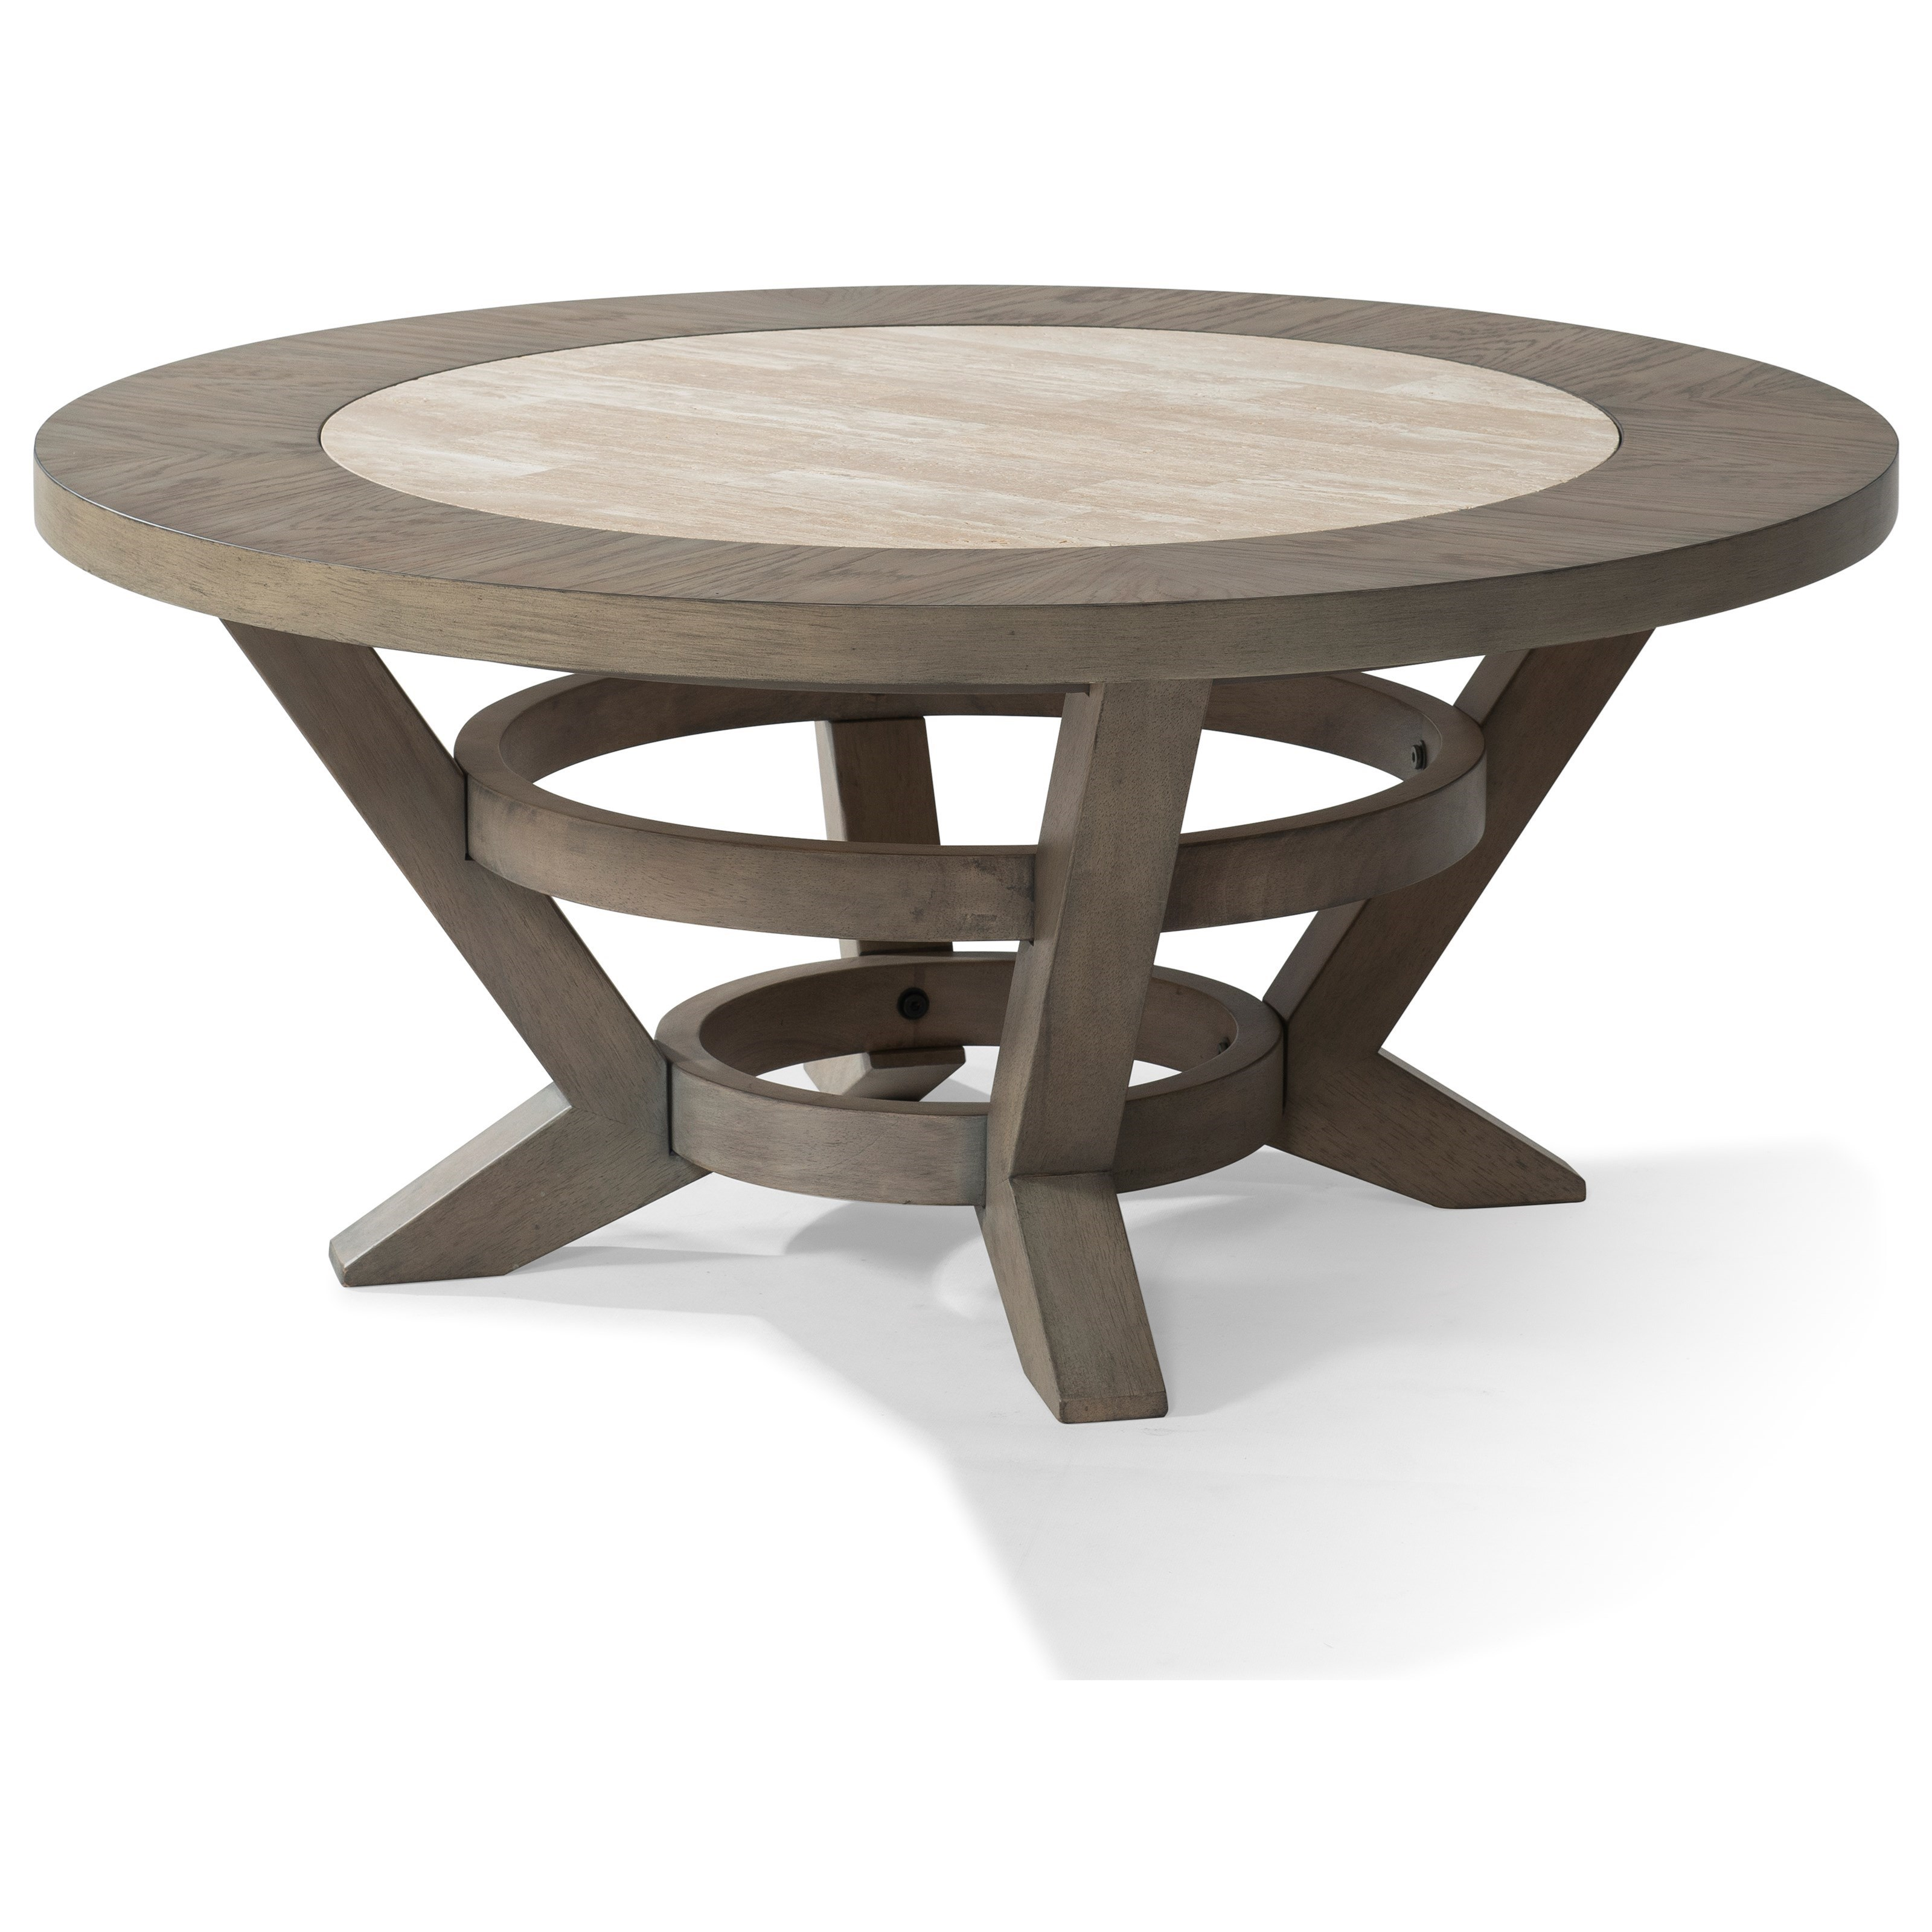 "Trisha Yearwood Home Collection by Klaussner Music City ""Hello, I'm Gone"" Round Cocktail Table - Item Number: 924-820 CTBL"